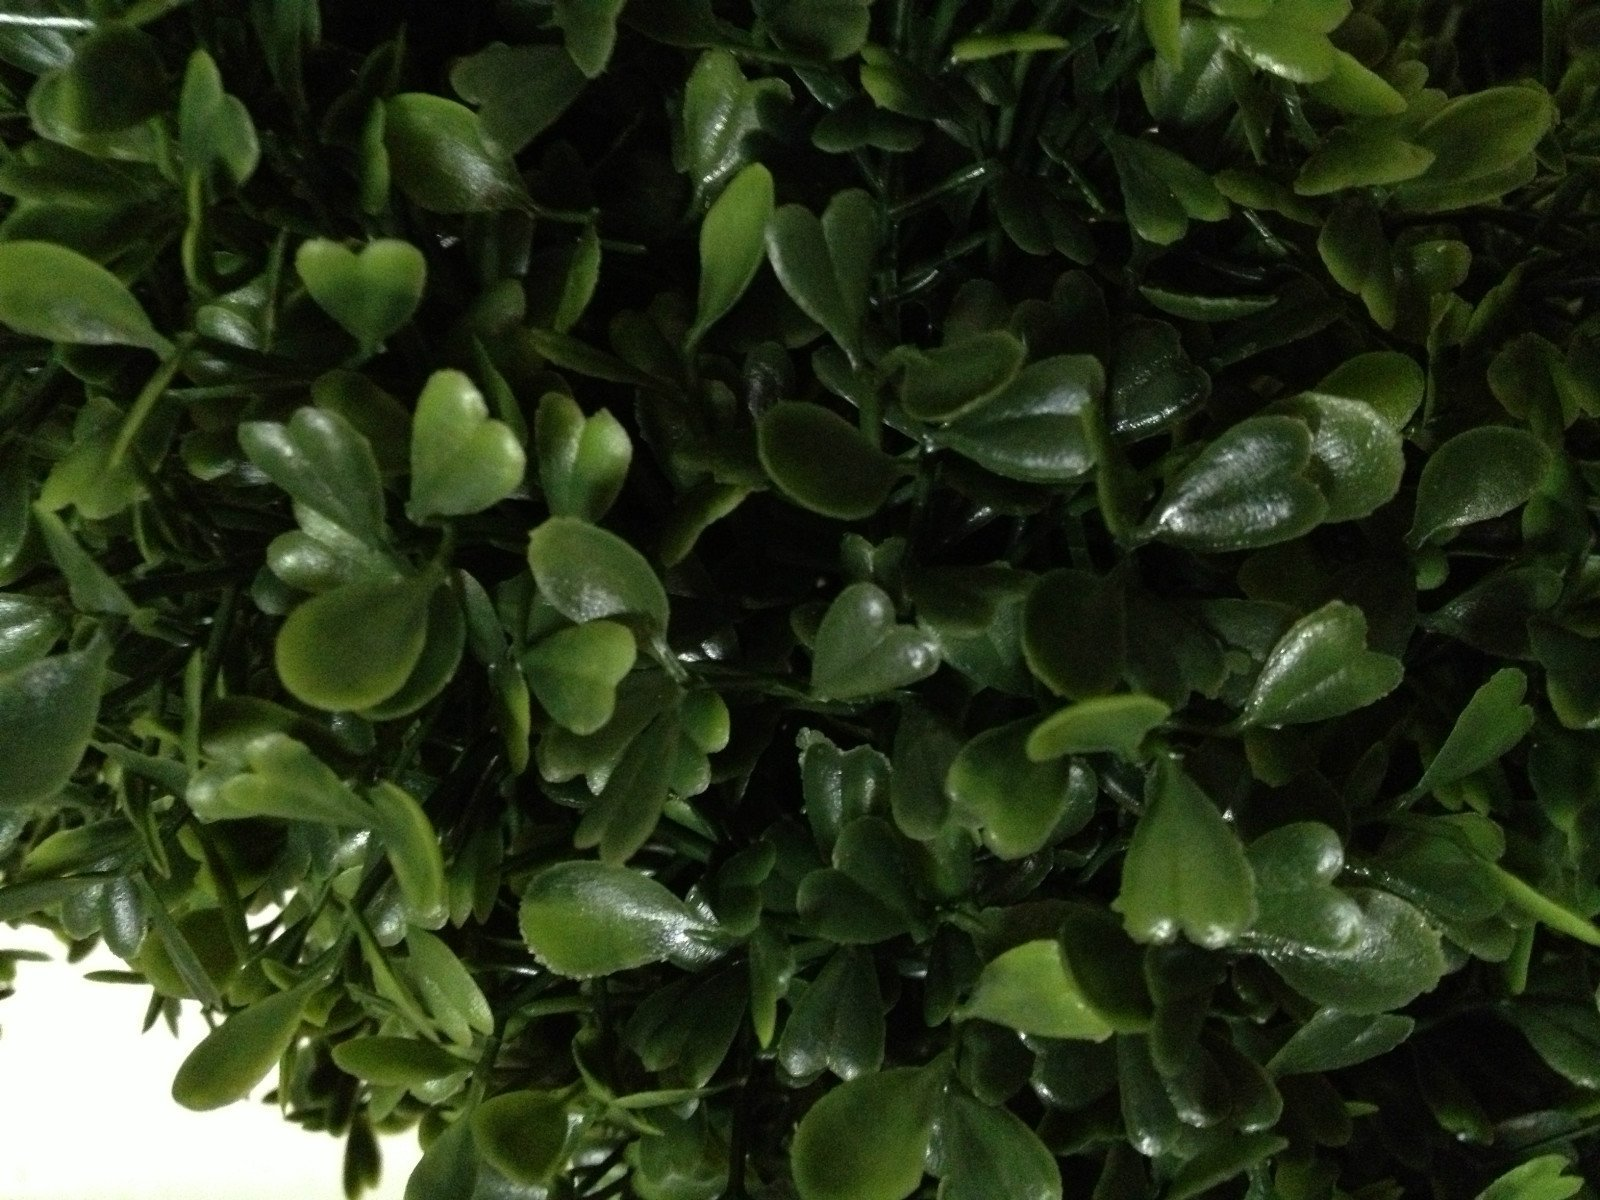 Two 4 Foot 2 Inch Artificial Boxwood Spiral Topiary Trees Potted Indoor or Outdoor by Silk Tree Warehouse (Image #2)